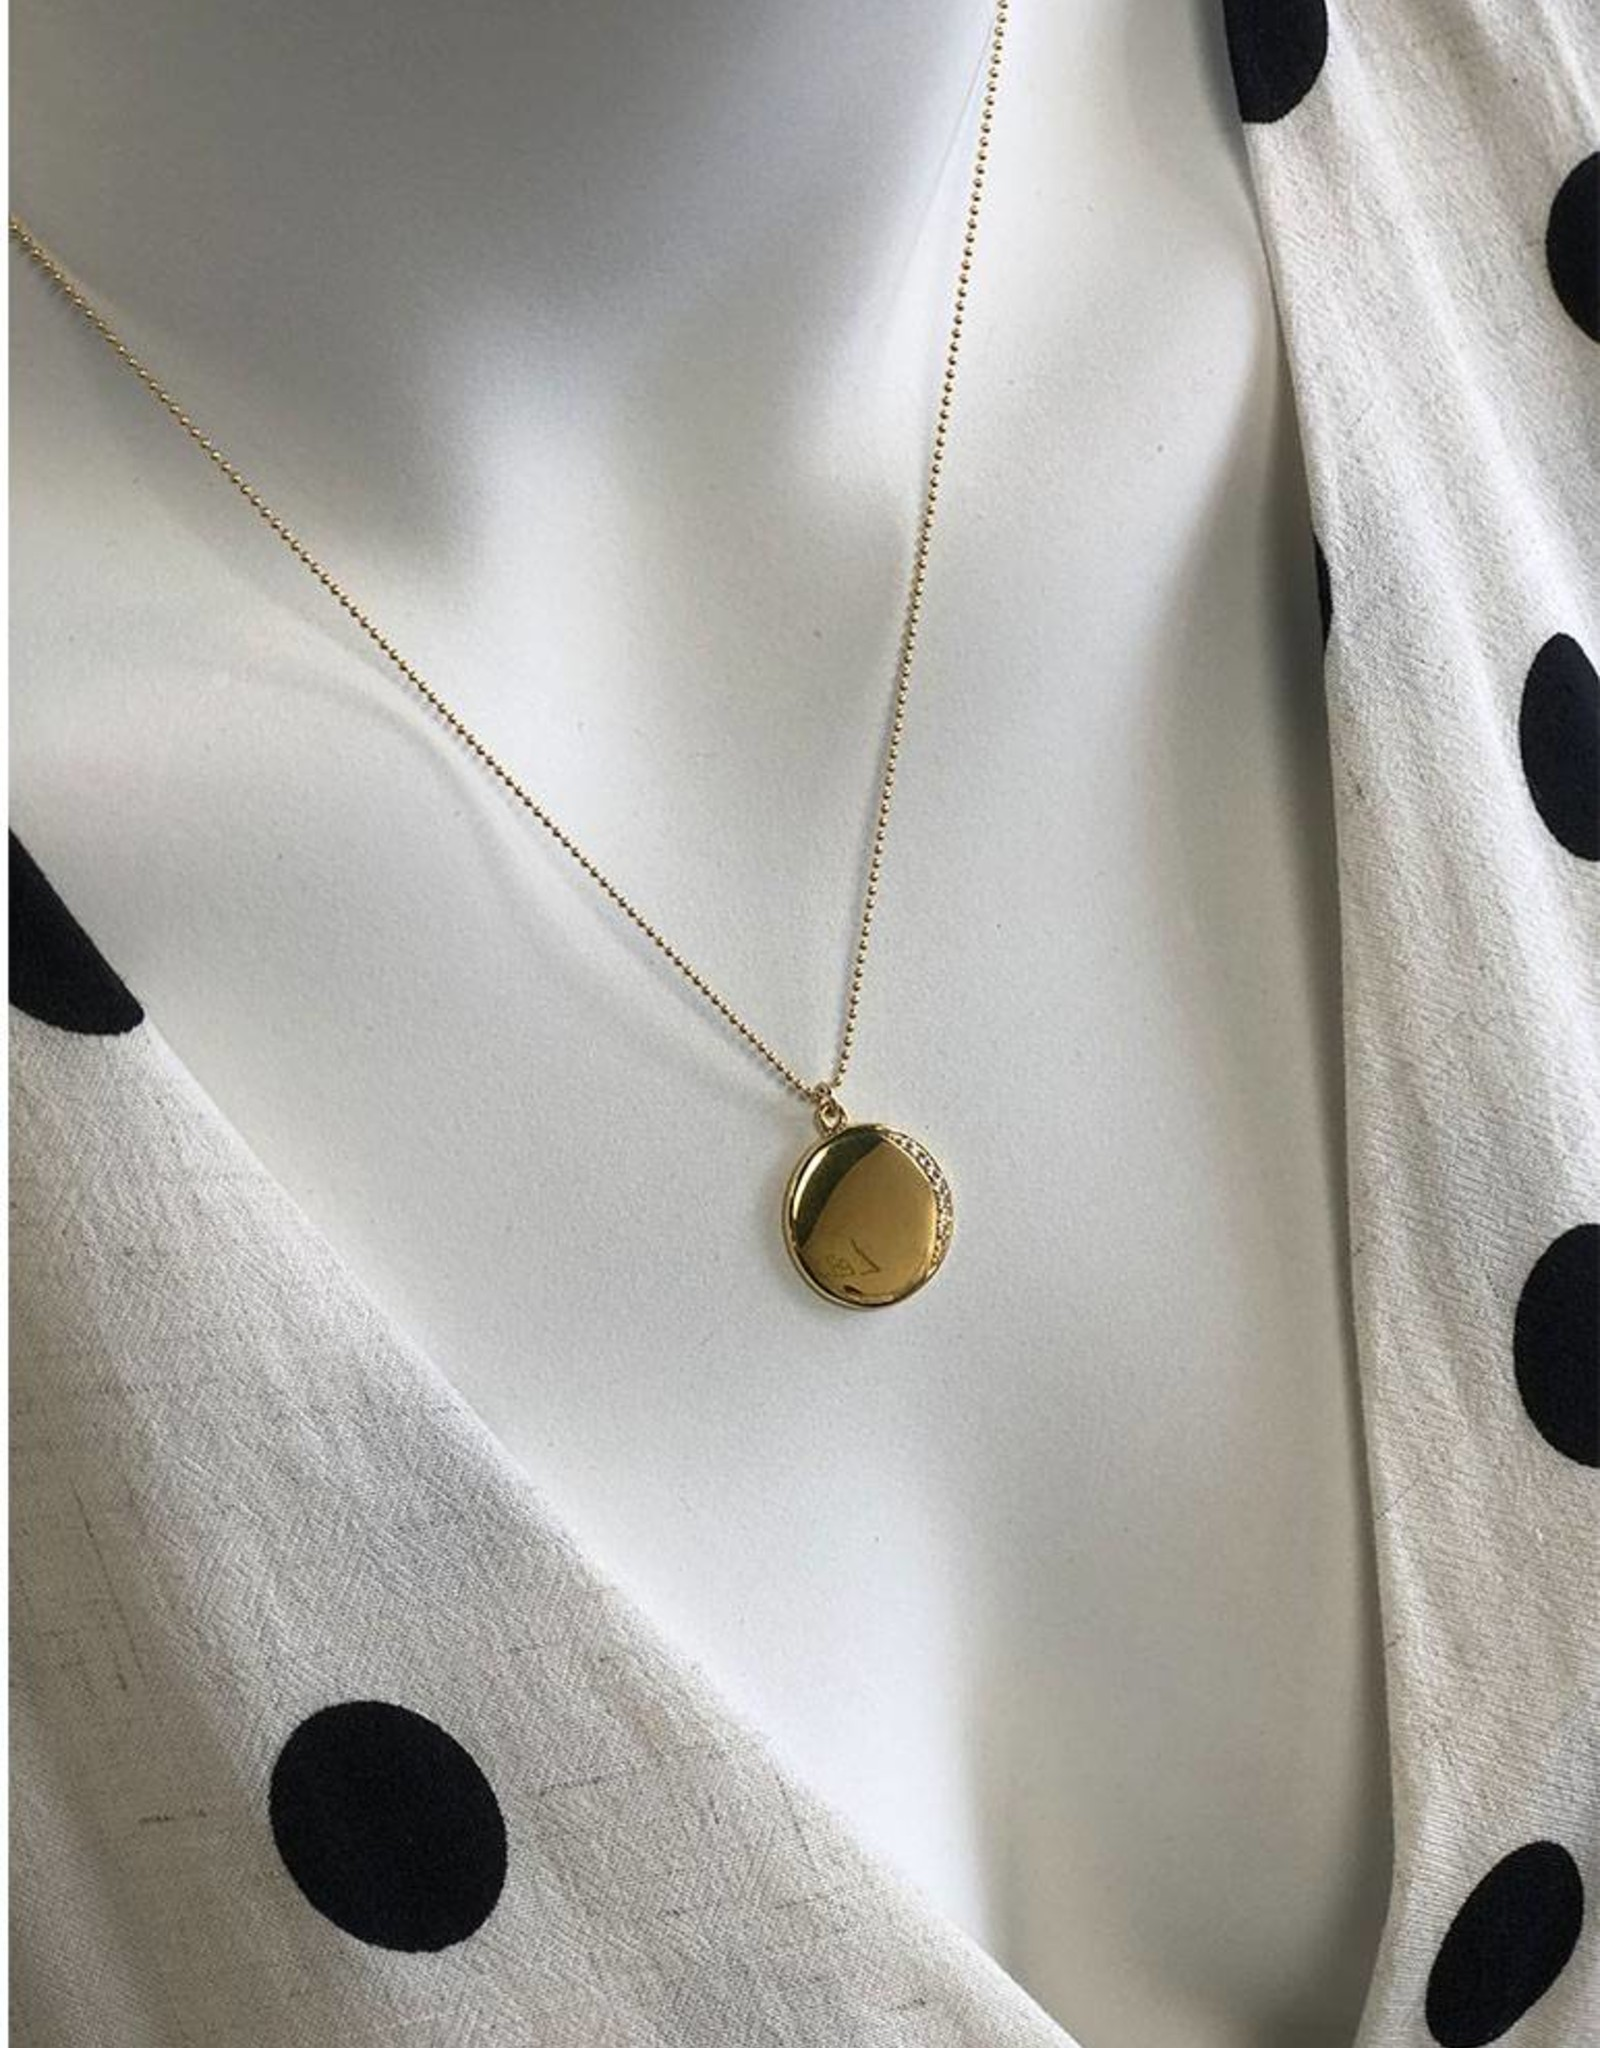 LEAH ALEXANDRA Leahlax ECLIPSE necklace, GOLD